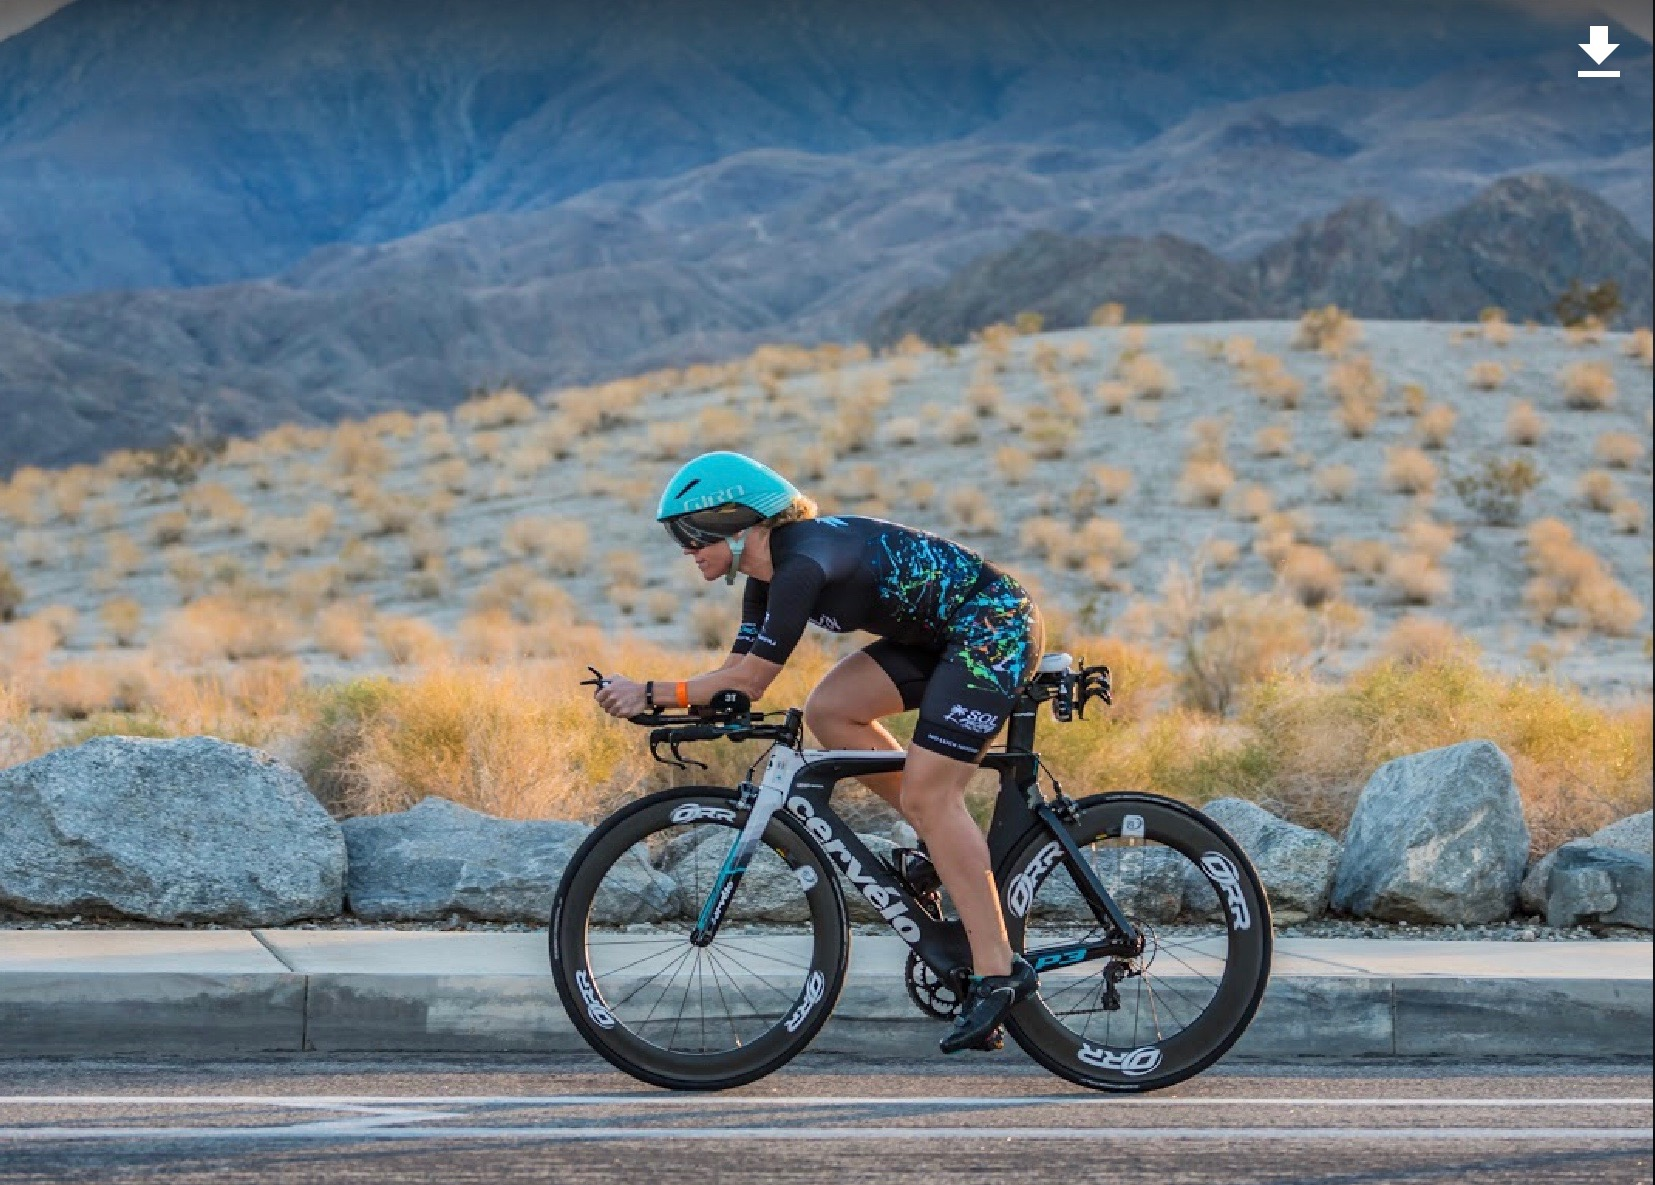 Coach_Terry_Wilson_Pursuit_of_The_Perfect_Race_IRONMAN_Alyson_Waton_3.jpg